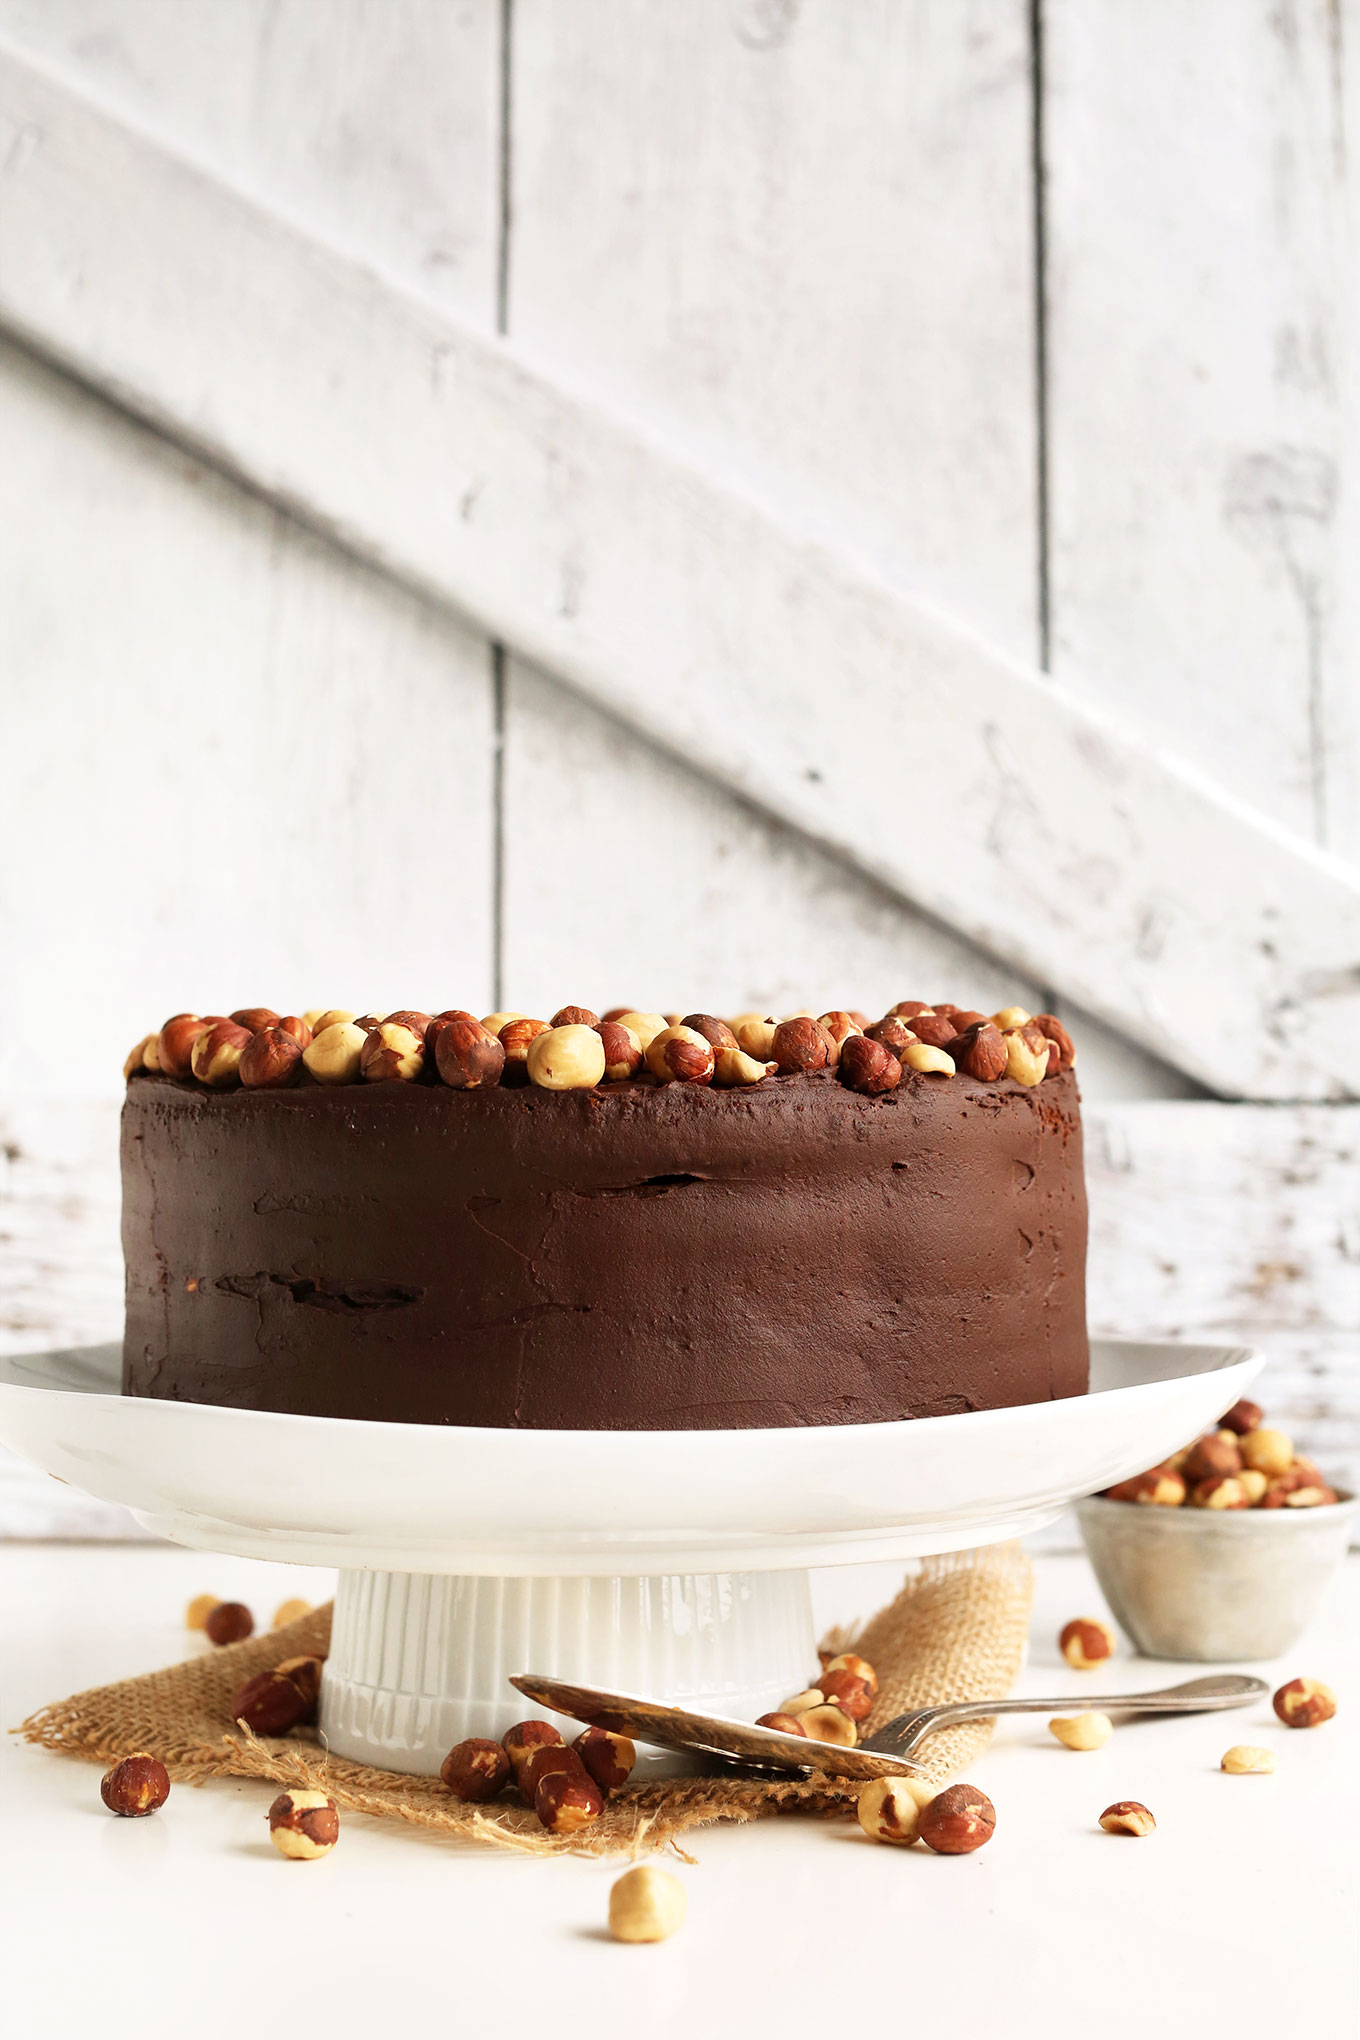 Vegan GF Chocolate Hazelnut Cake perched on a cake stand